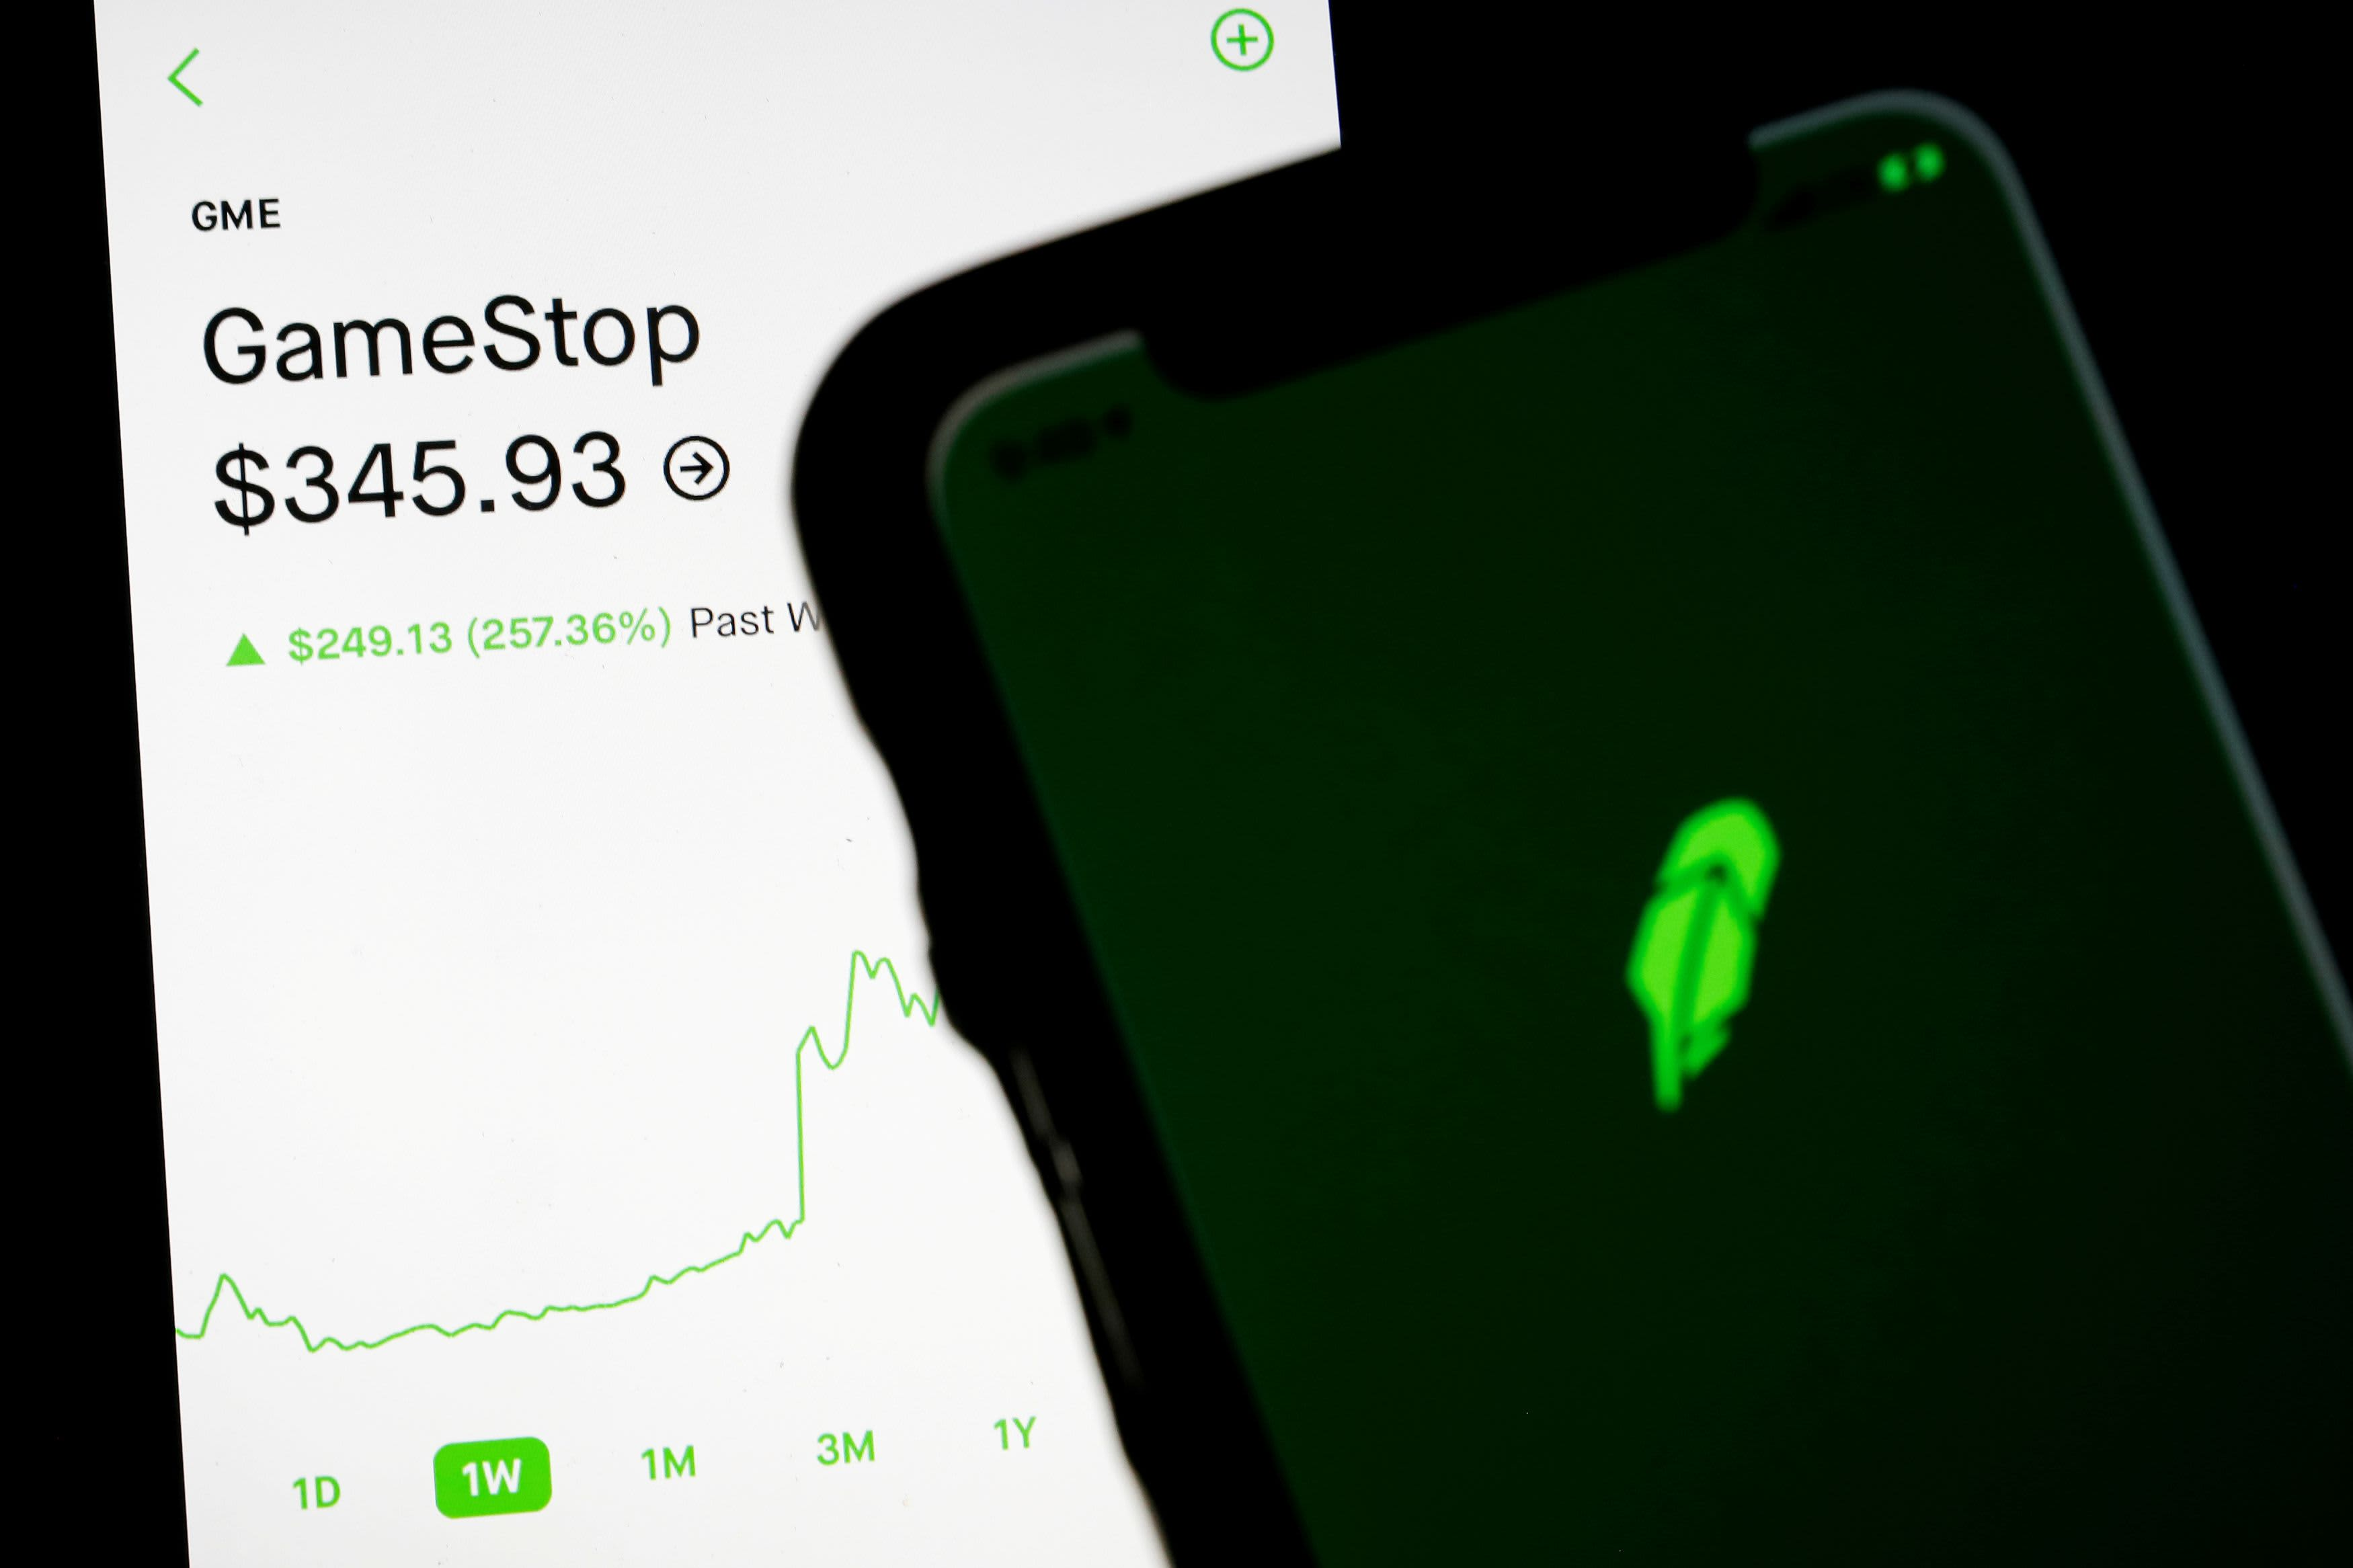 Here's what to expect from Thursday's GameStop hearing with Robinhood Citadel and Reddit CEOs – CNBC